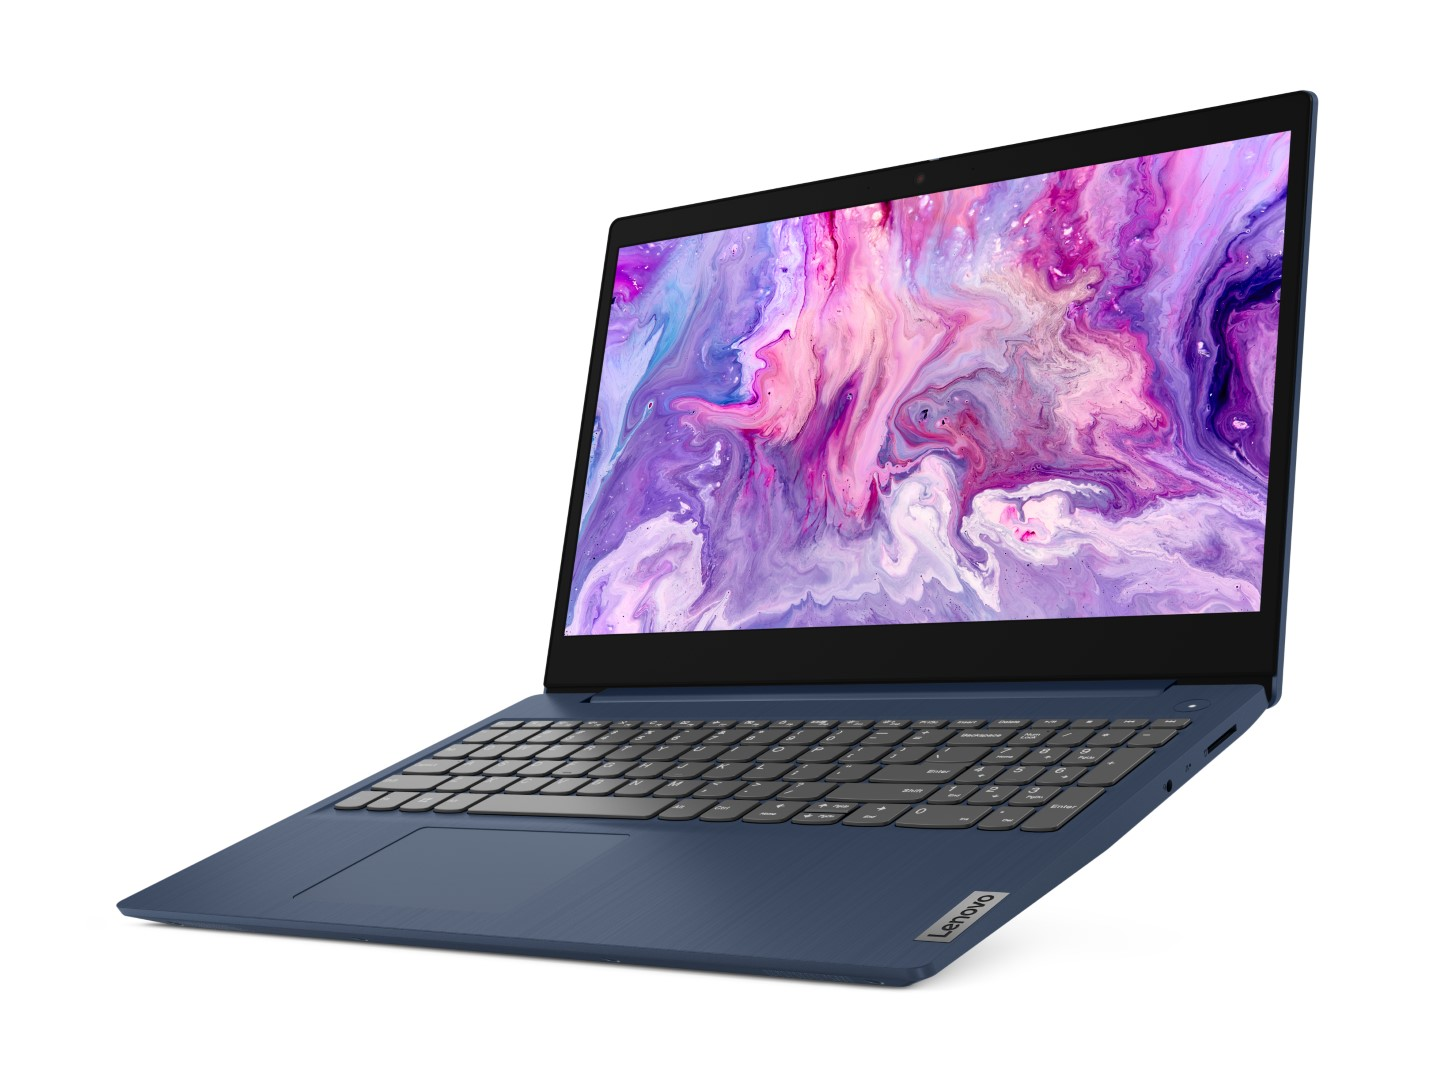 Budget Lenovo Ideapad 3 With 10th Gen Core I3 8 Gb Of Ram And 256 Gb Nvme Ssd Is Down To Less Than 300 Usd Right Now Notebookcheck Net News